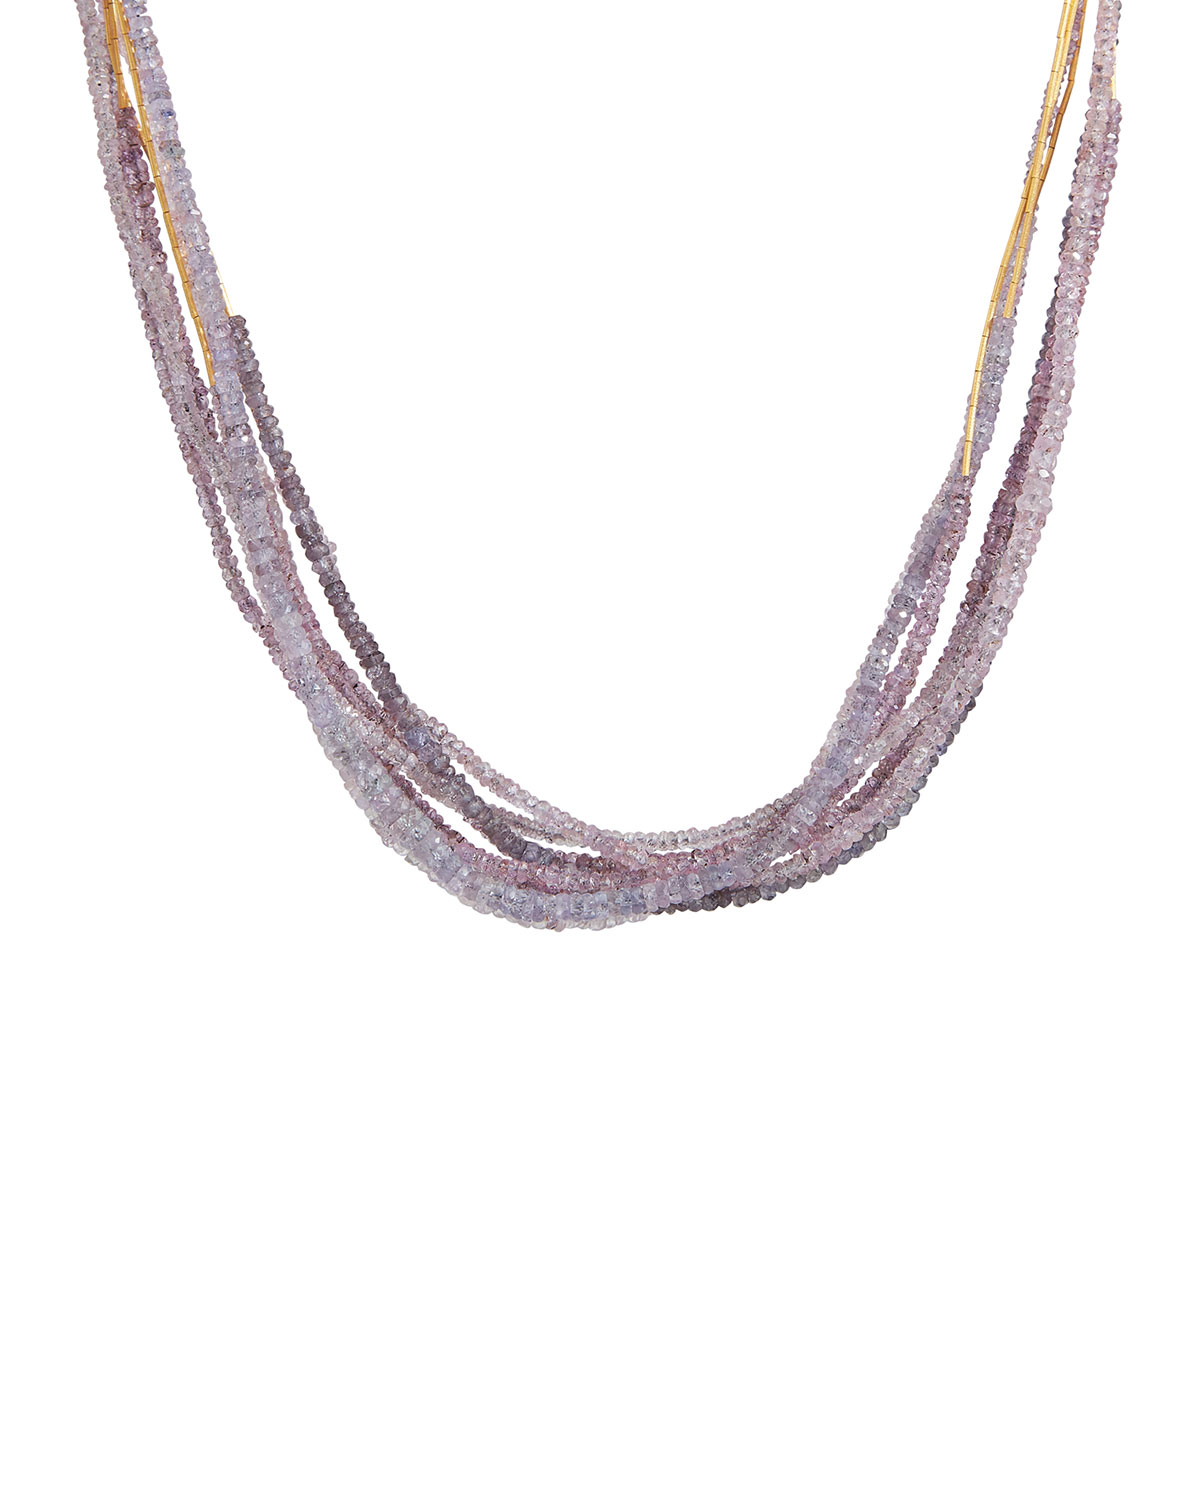 One-of-a-Kind Waterfall Multi-Strand Sapphire Necklace